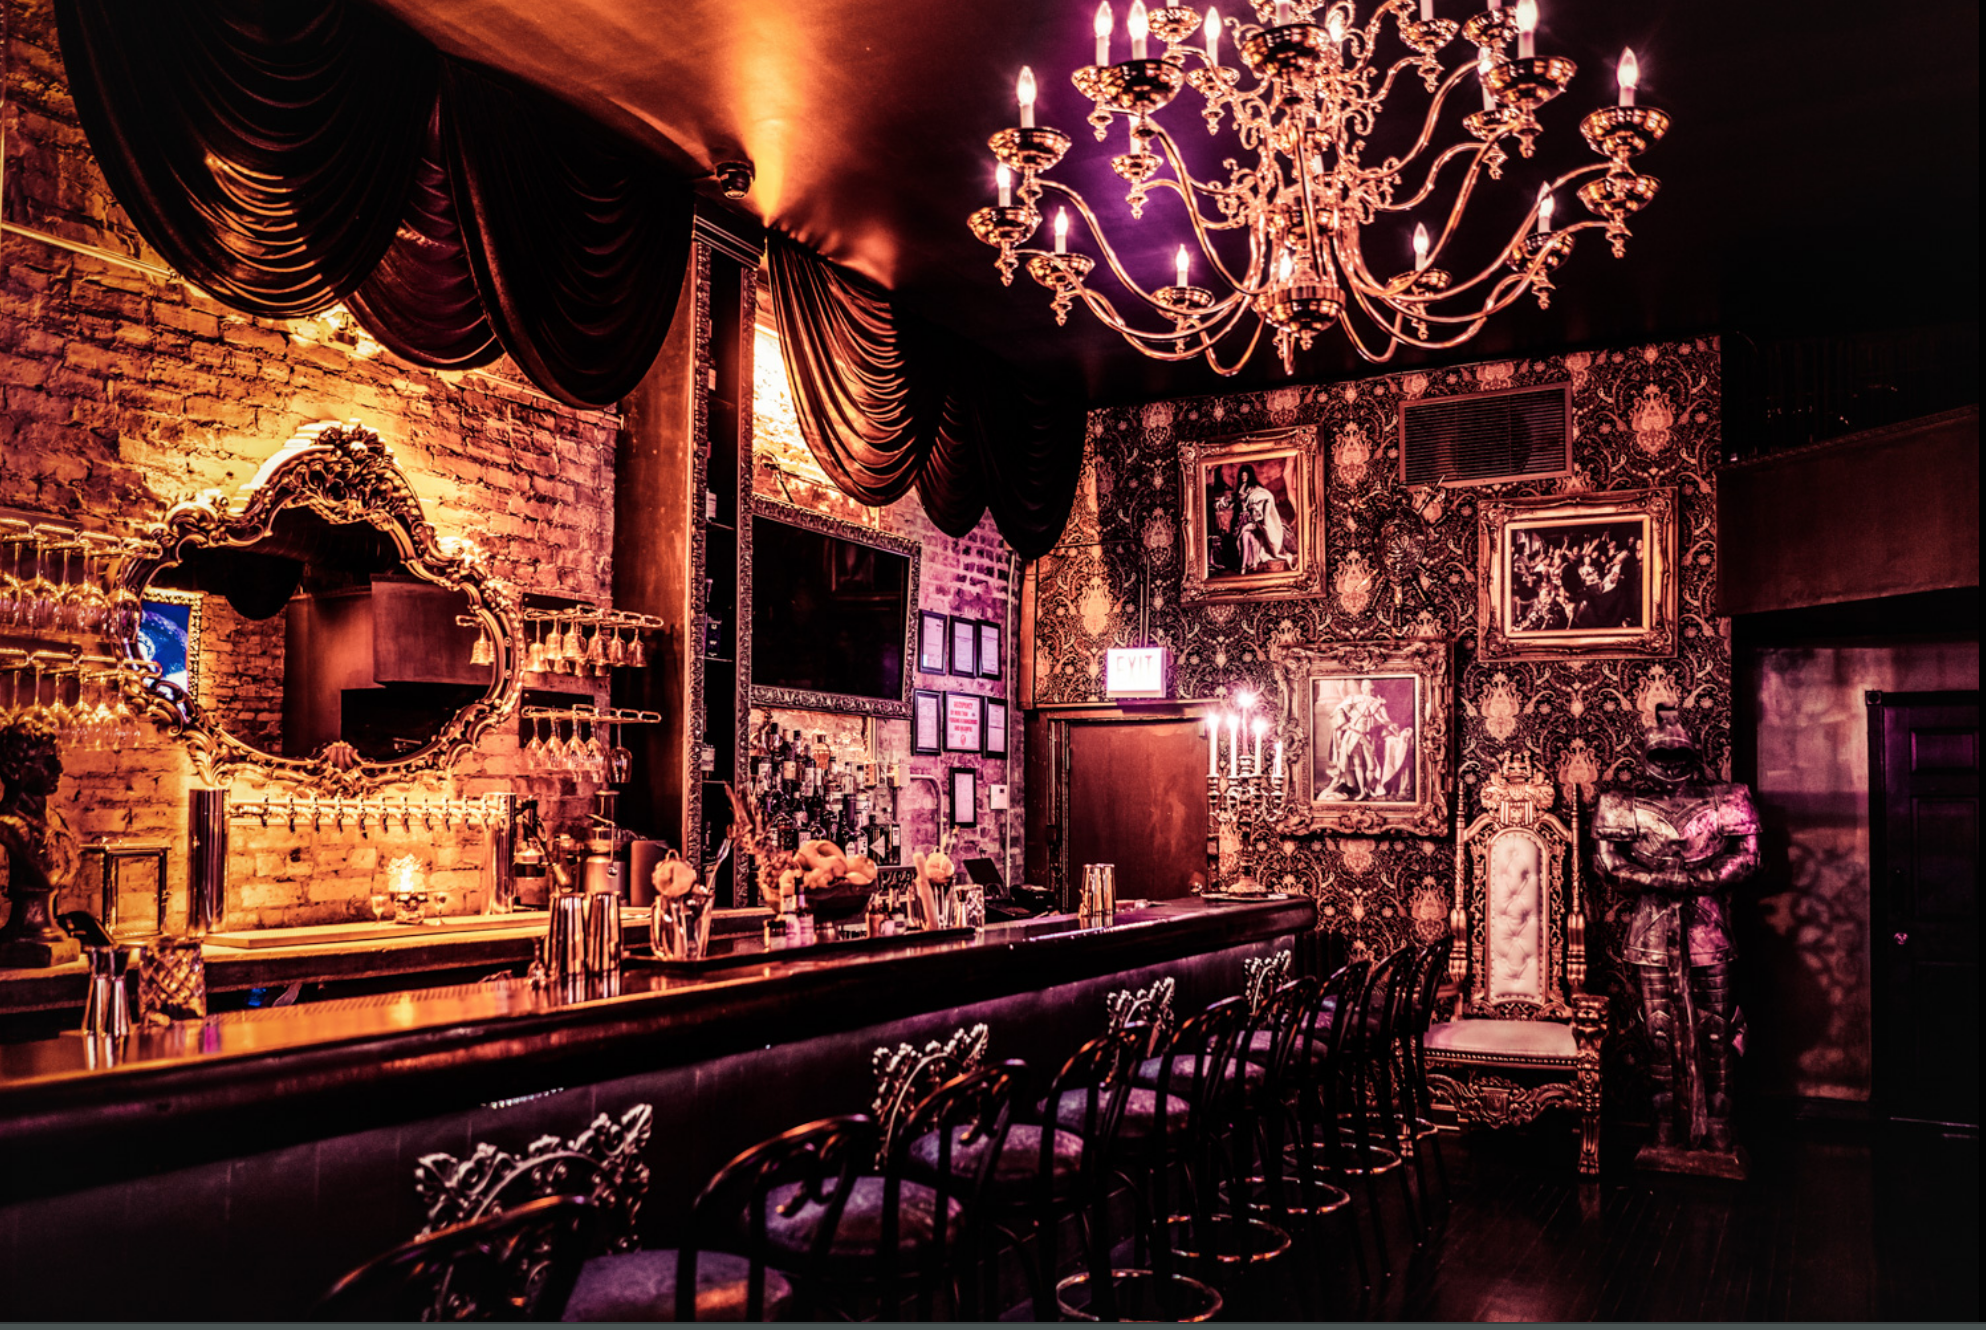 A Majestic Cocktail Lounge With a Royal Throne Opens in Lincoln Park